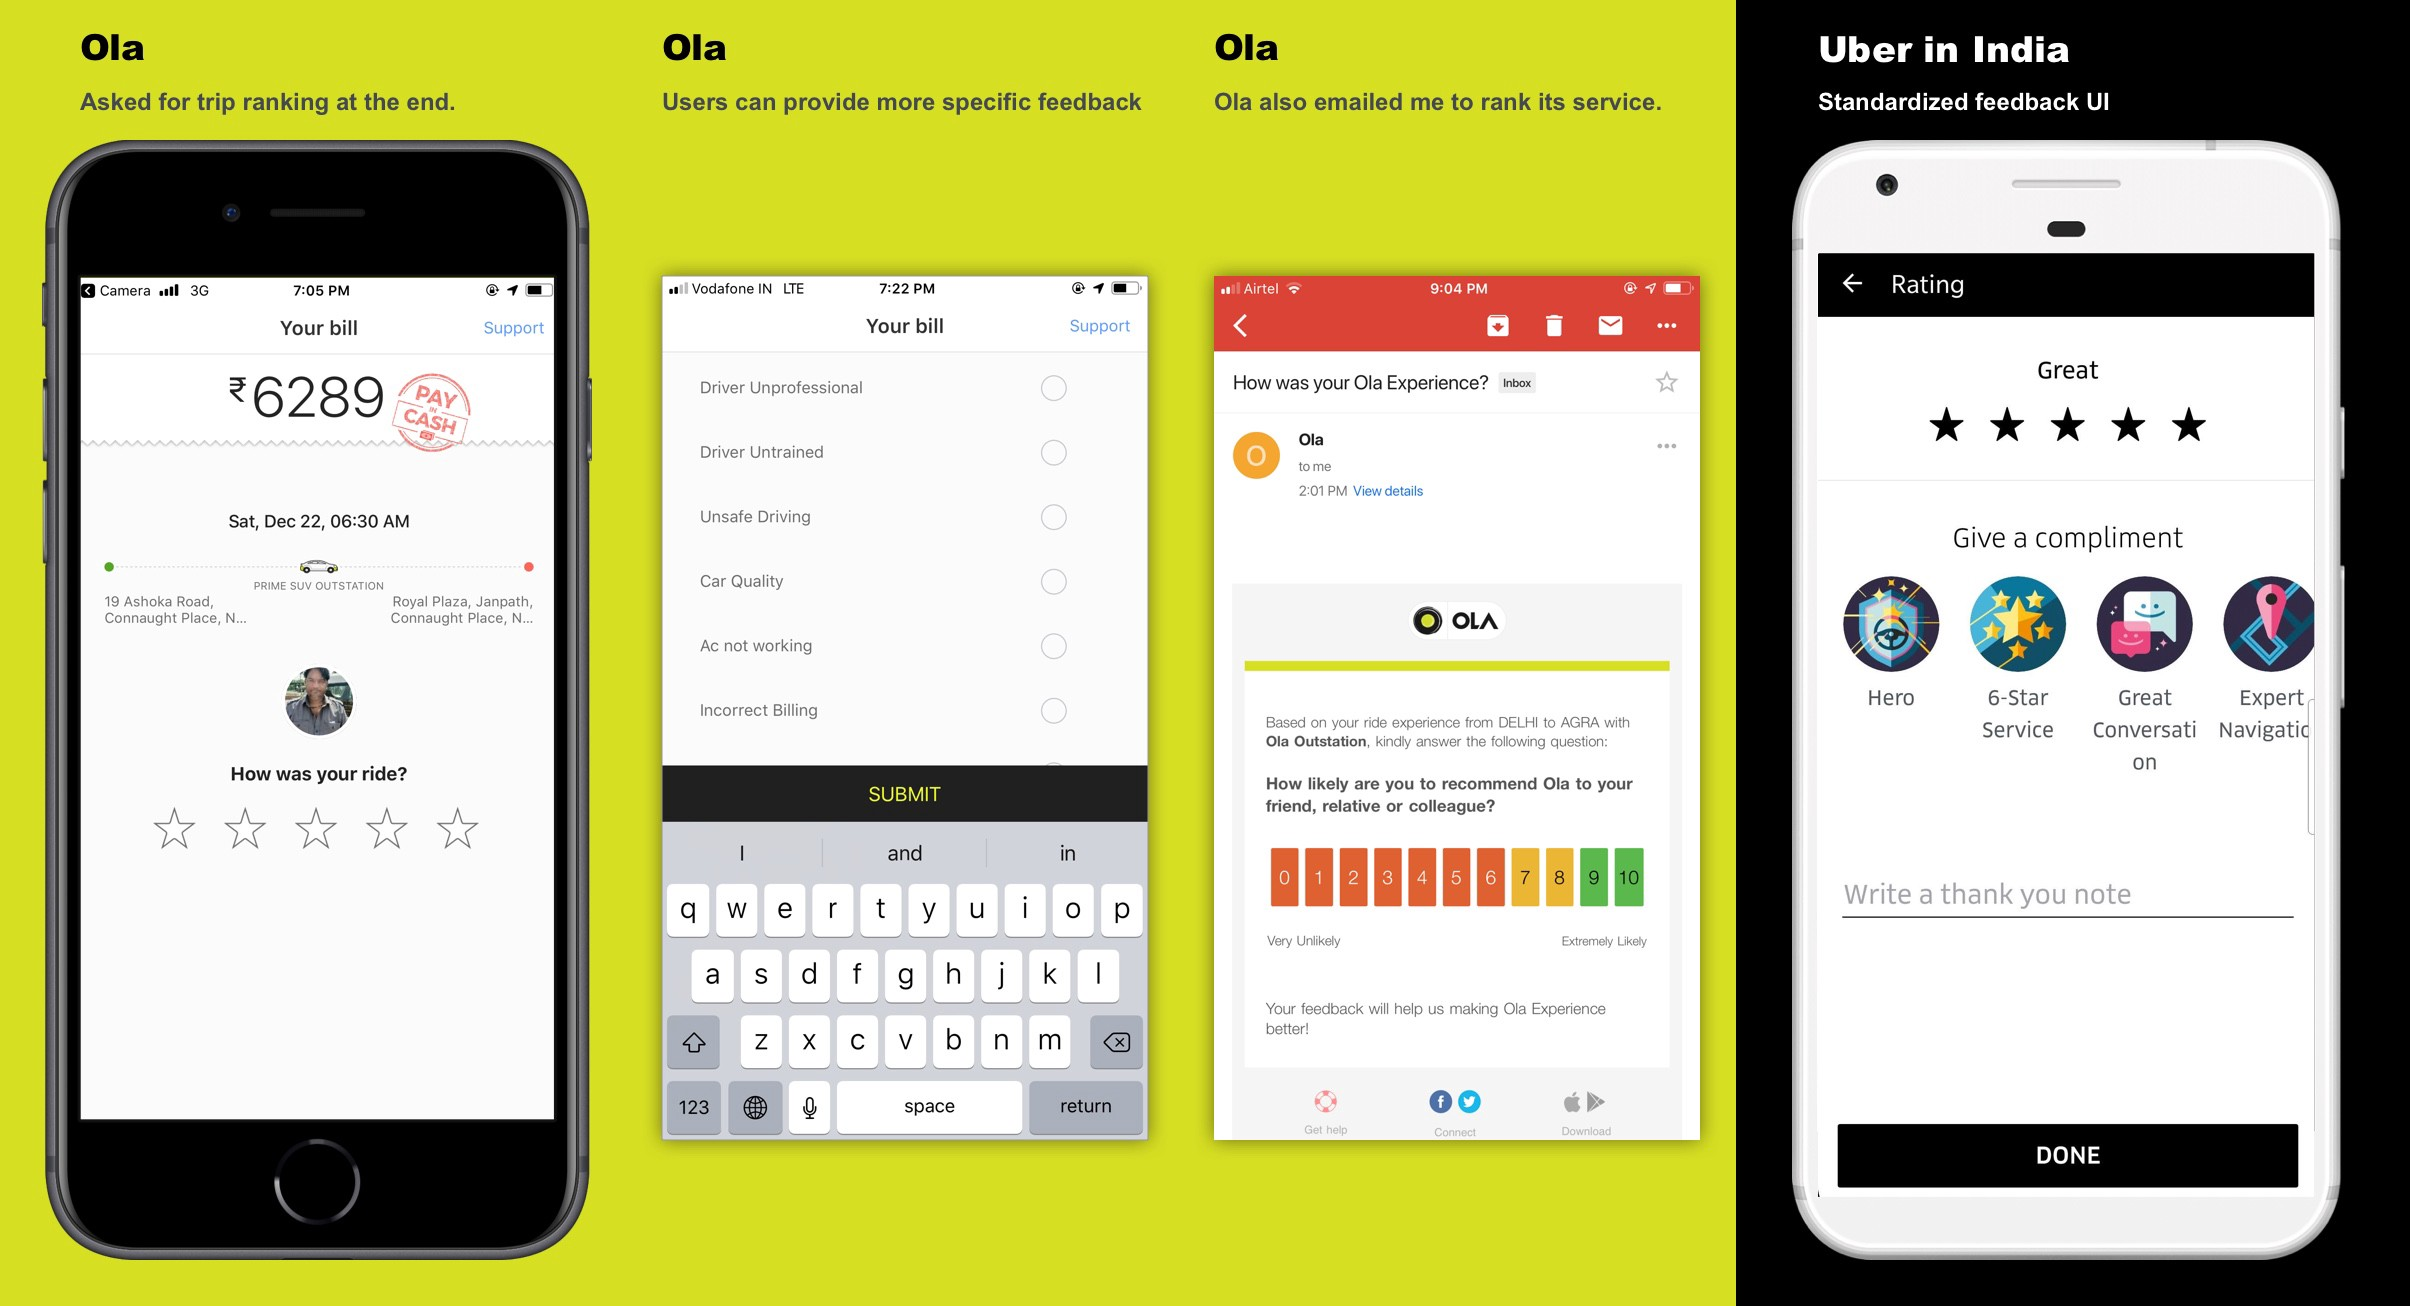 Uber India v s  Ola cabs — A UX Evaluation - UX Collective